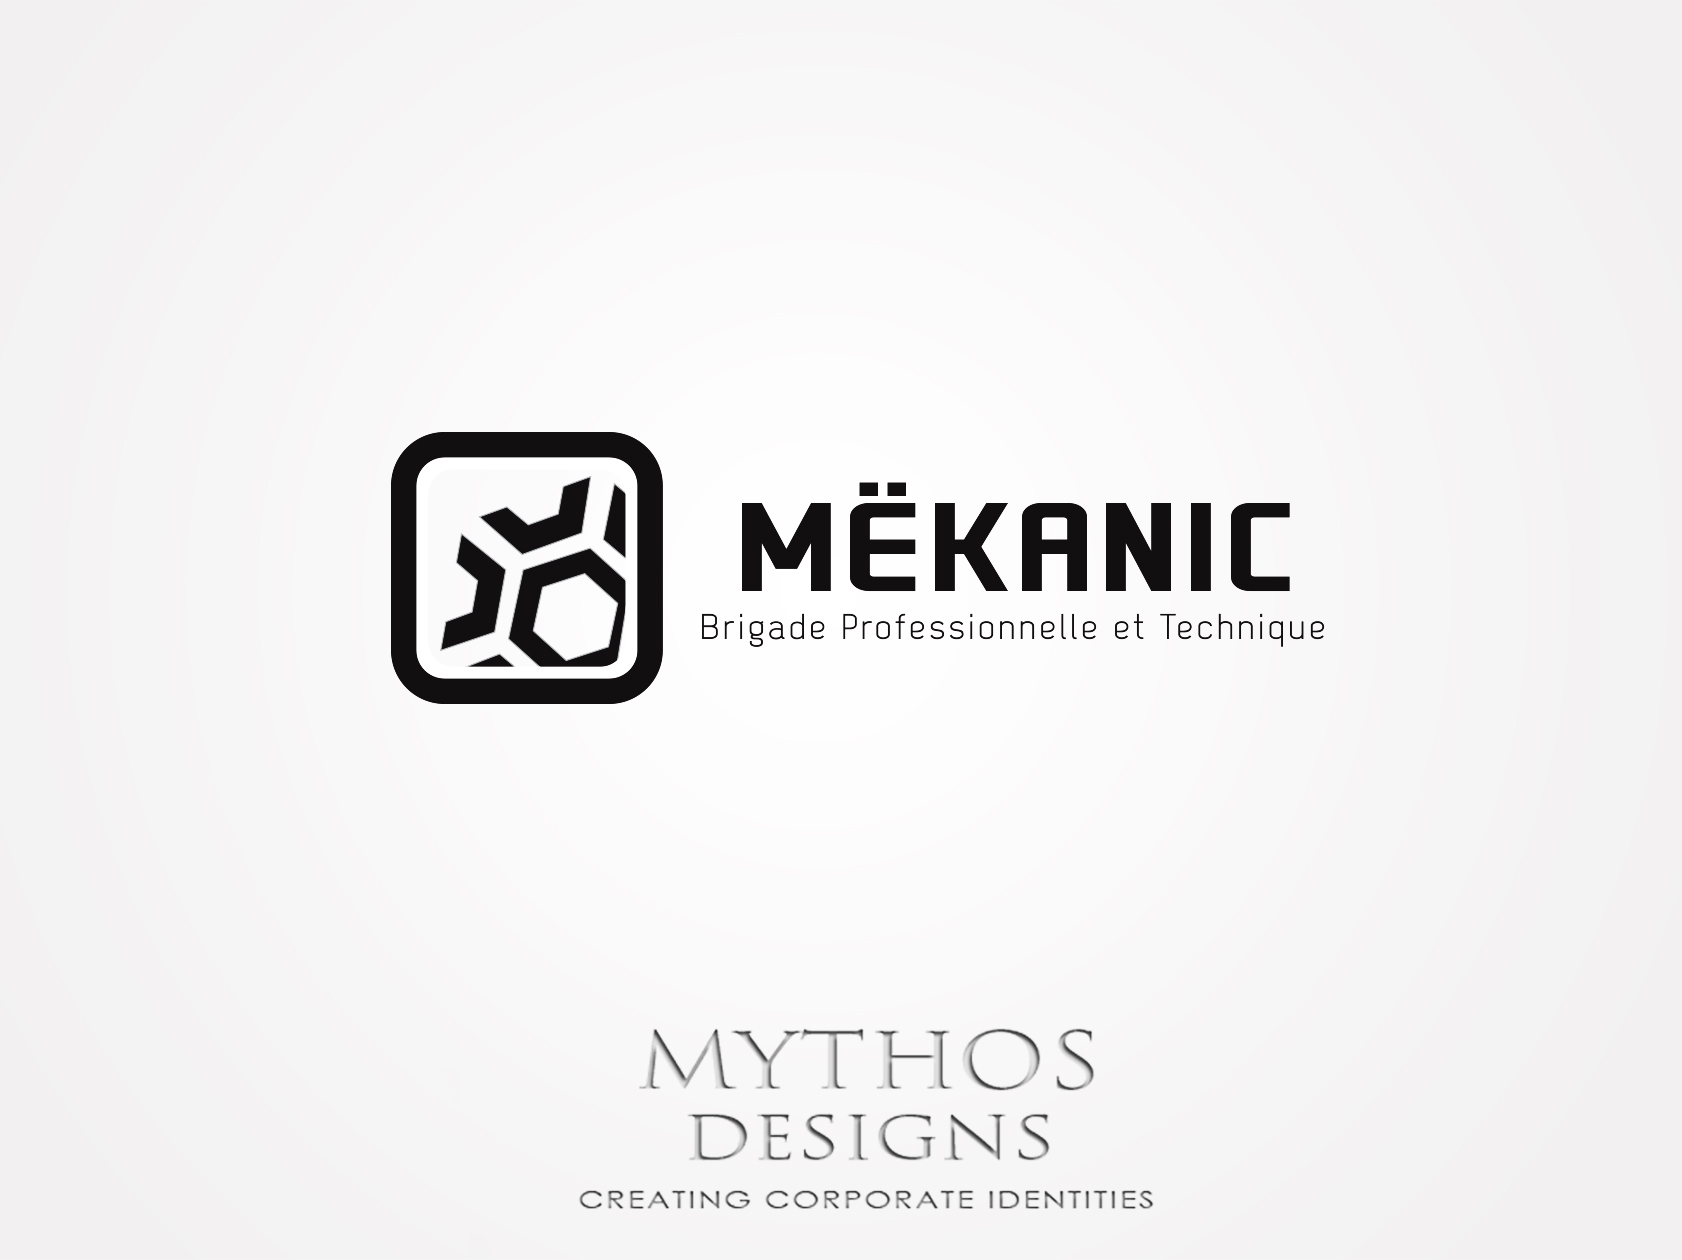 Logo Design by Mythos Designs - Entry No. 379 in the Logo Design Contest Creative Logo Design for MËKANIC - Professional and technical squad.